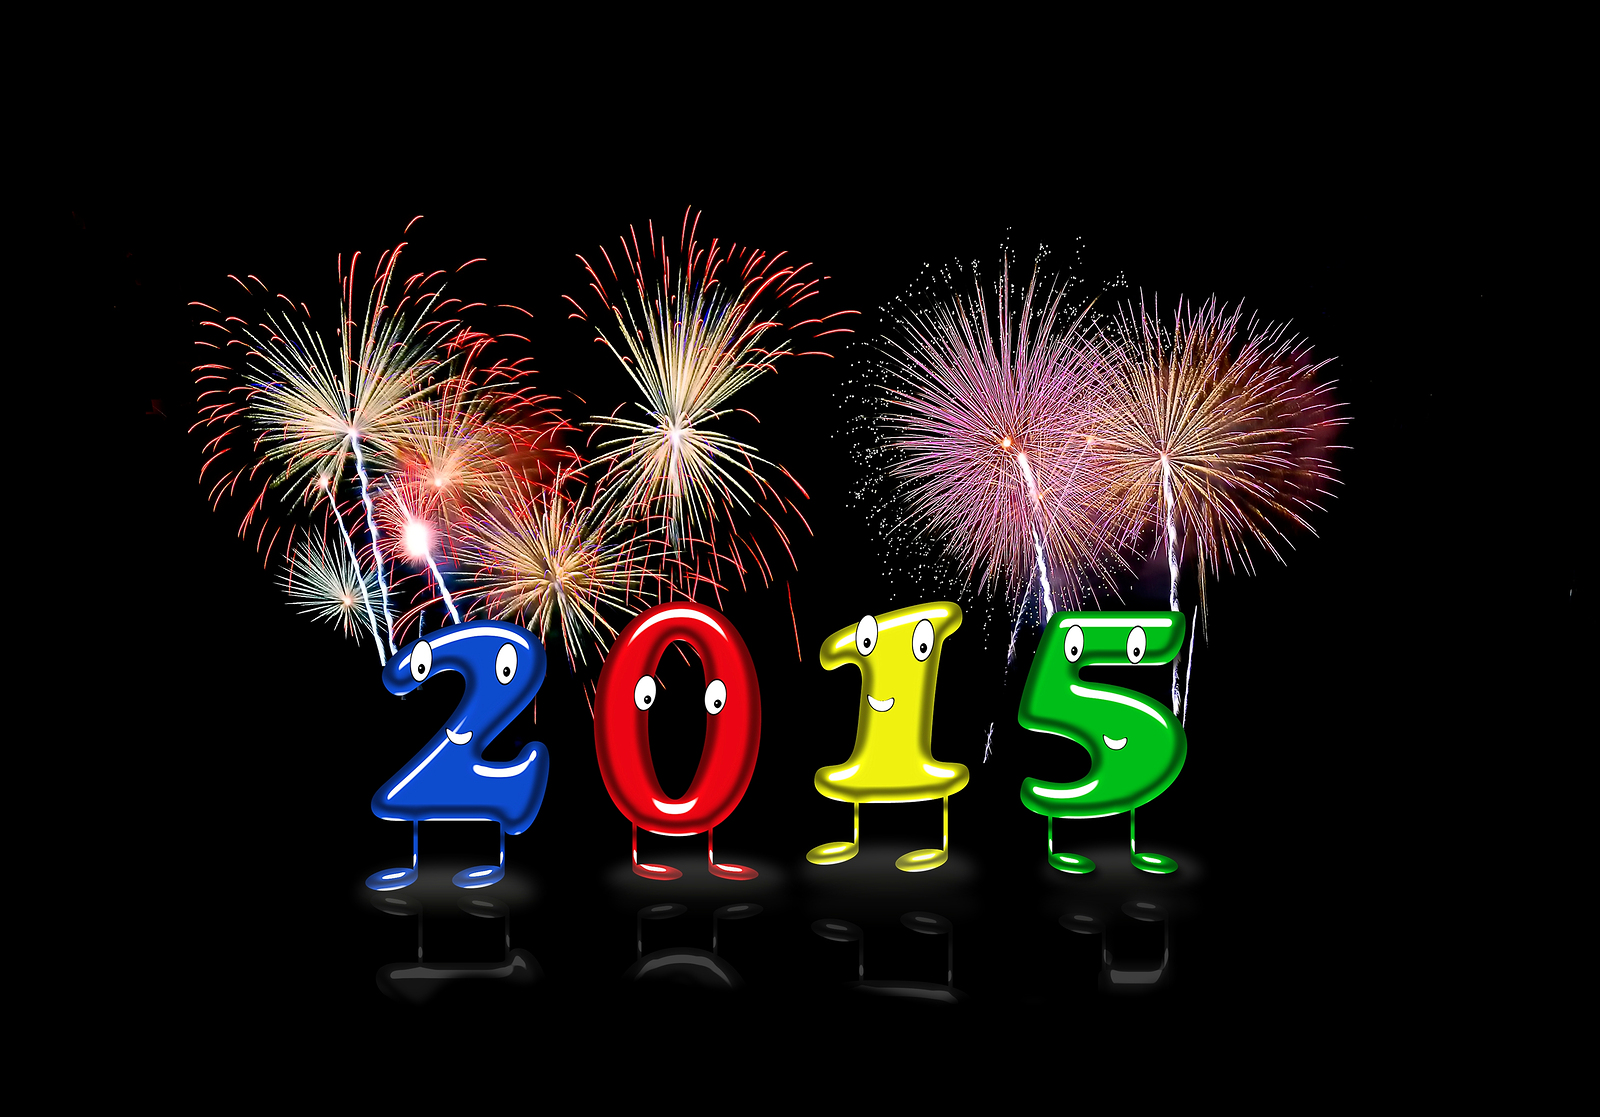 #122 Happy New Year!!!